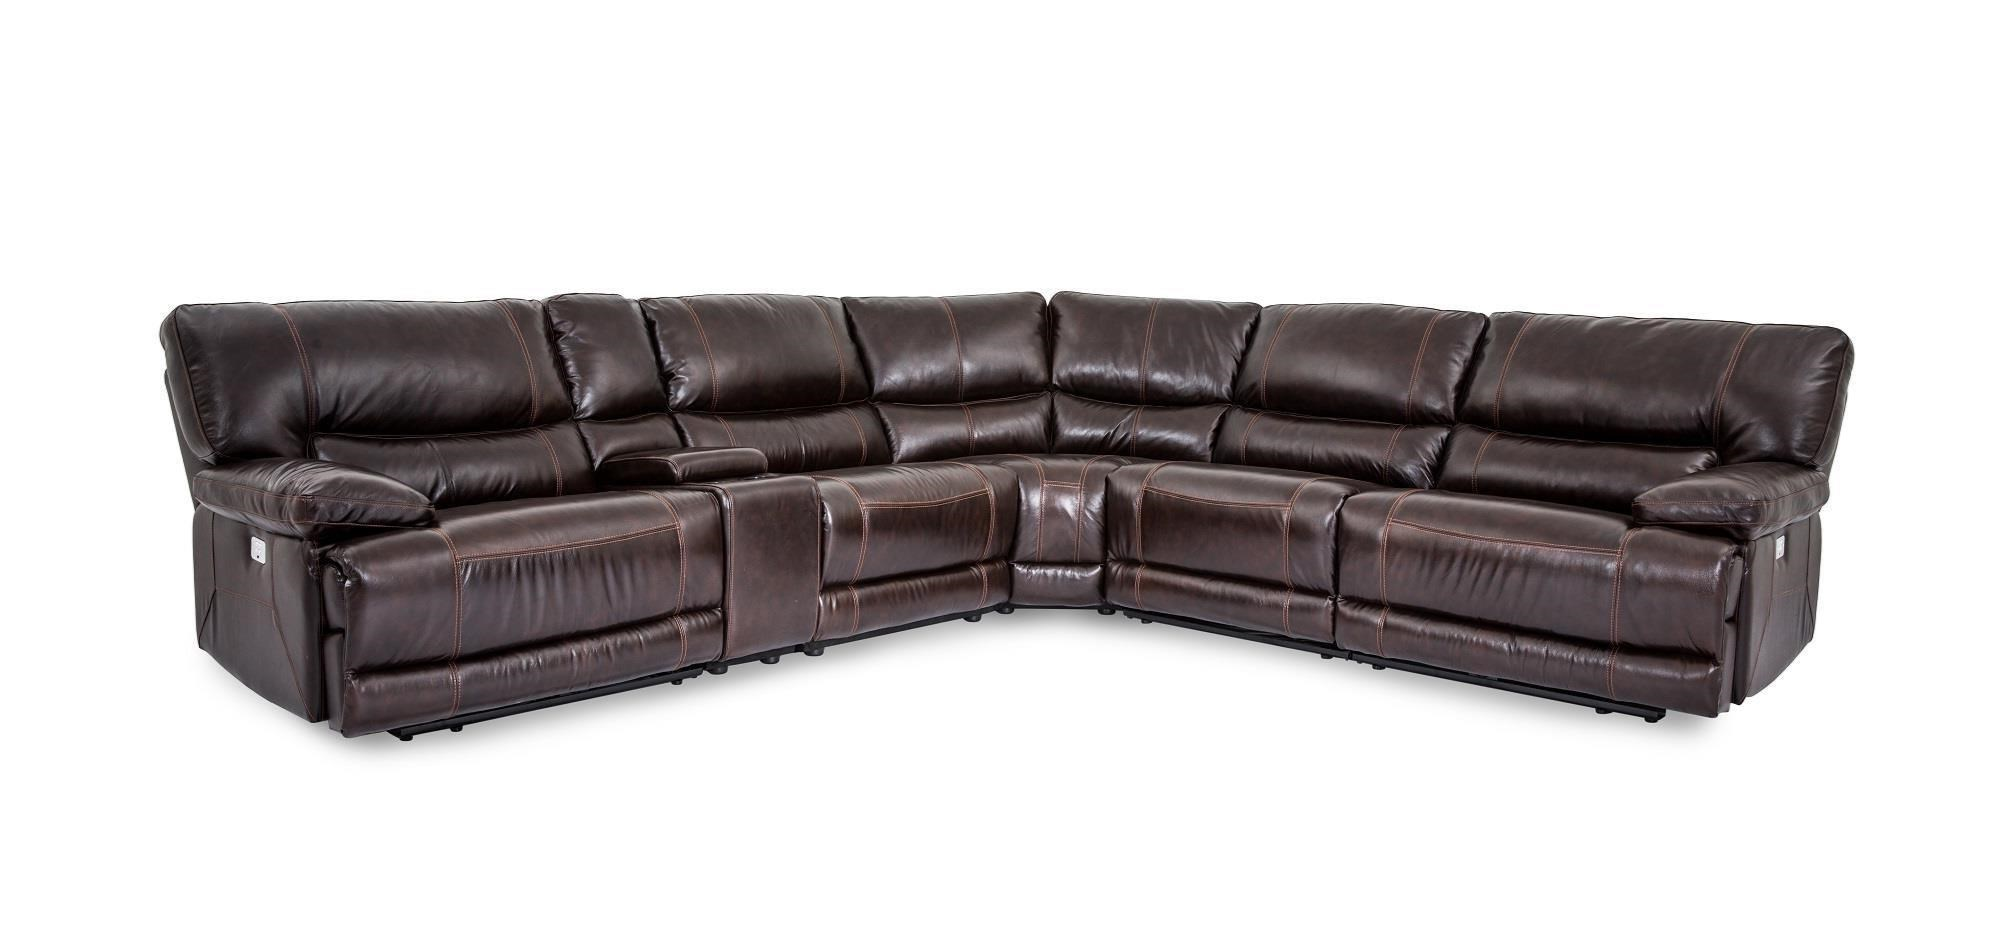 Leather Sectional Sofa Recliner X9509m Collins Leather Power Reclining 6 Piece Sectional By Cheers Sofa At Dunk Bright Furniture